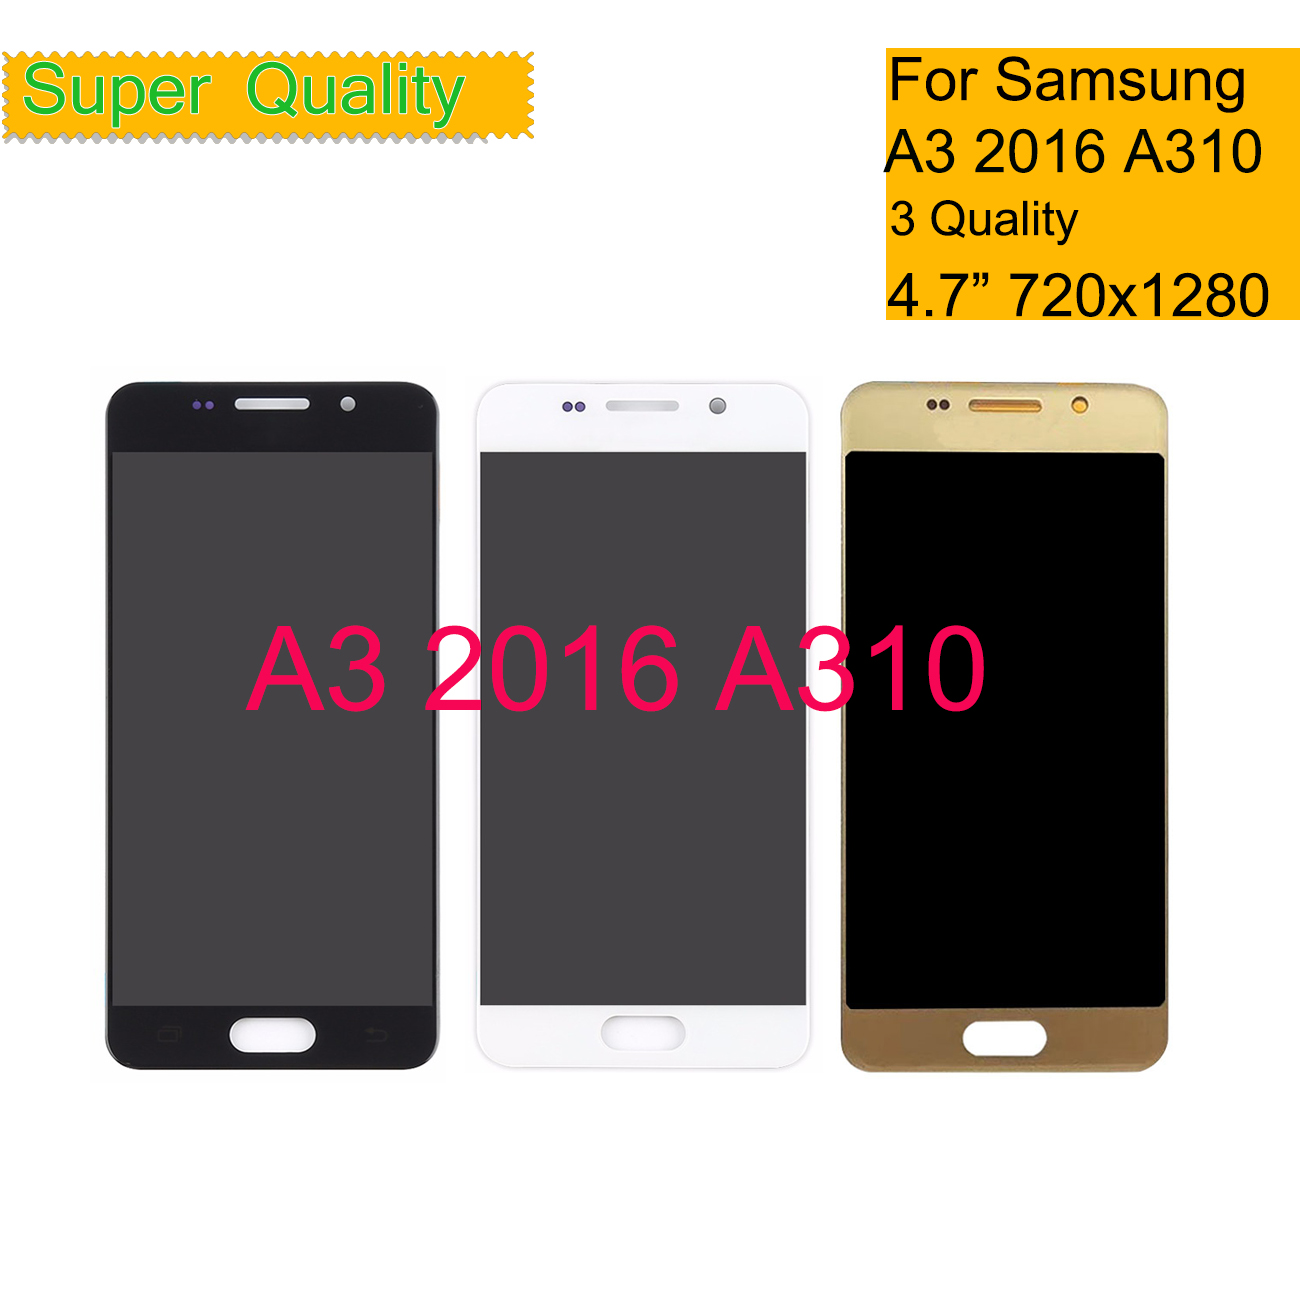 A310 For <font><b>Samsung</b></font> <font><b>Galaxy</b></font> <font><b>A3</b></font> 2016 A310 A310F A310H A310M Touch Screen Digitizer Glass <font><b>LCD</b></font> Display Panel <font><b>LCD</b></font> Assembly Complete image